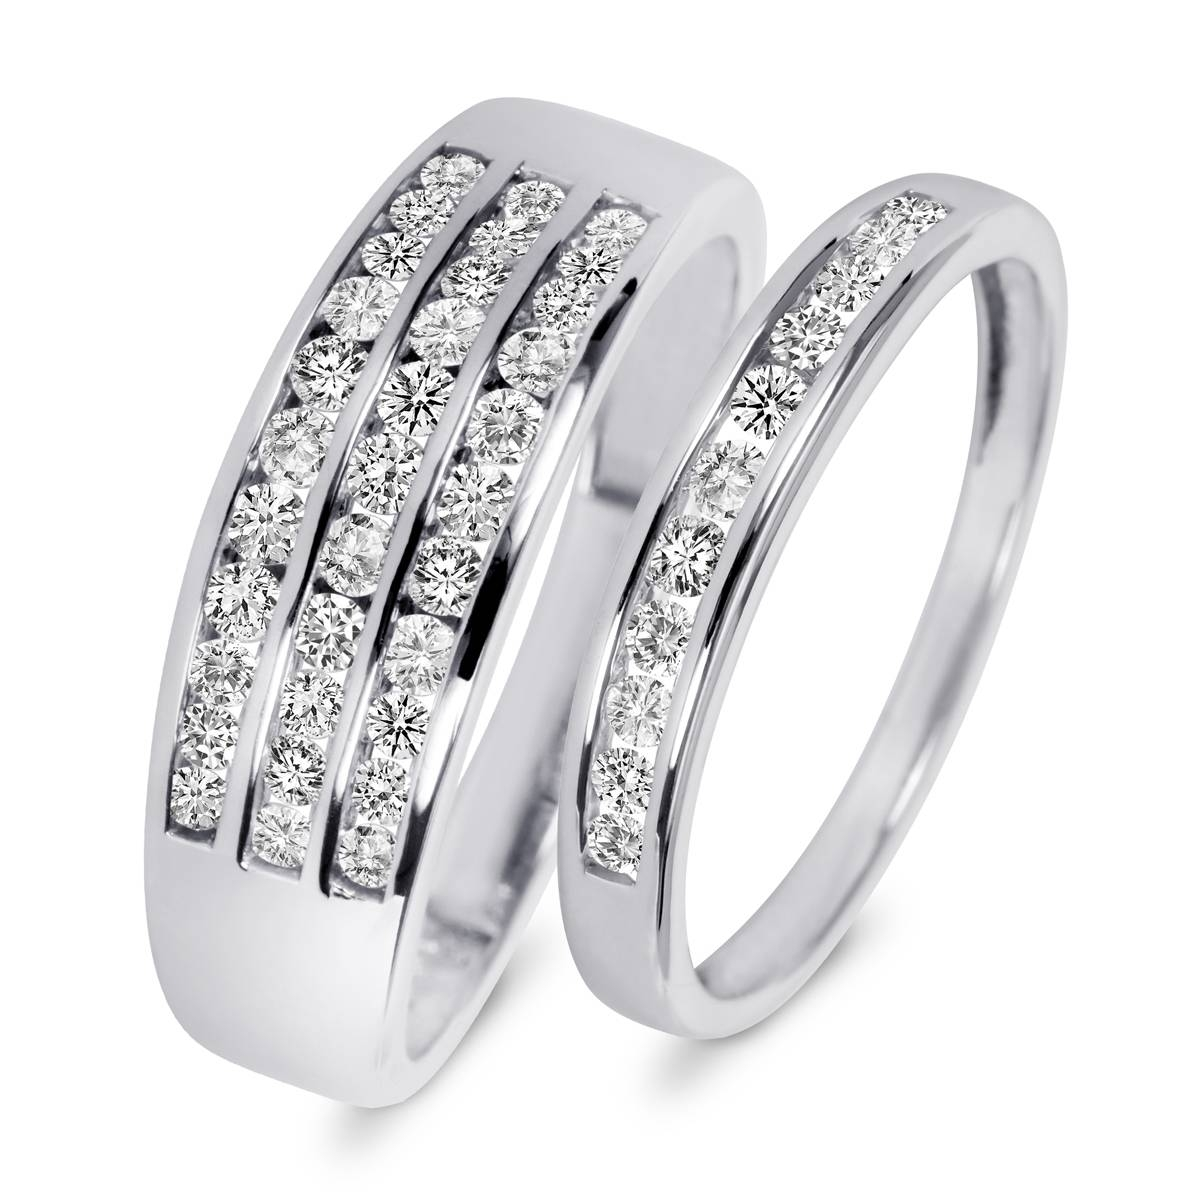 7/8 Carat T.w. Diamond His And Hers Wedding Rings 14K White Gold Within His And Her Wedding Bands Sets (Gallery 6 of 15)